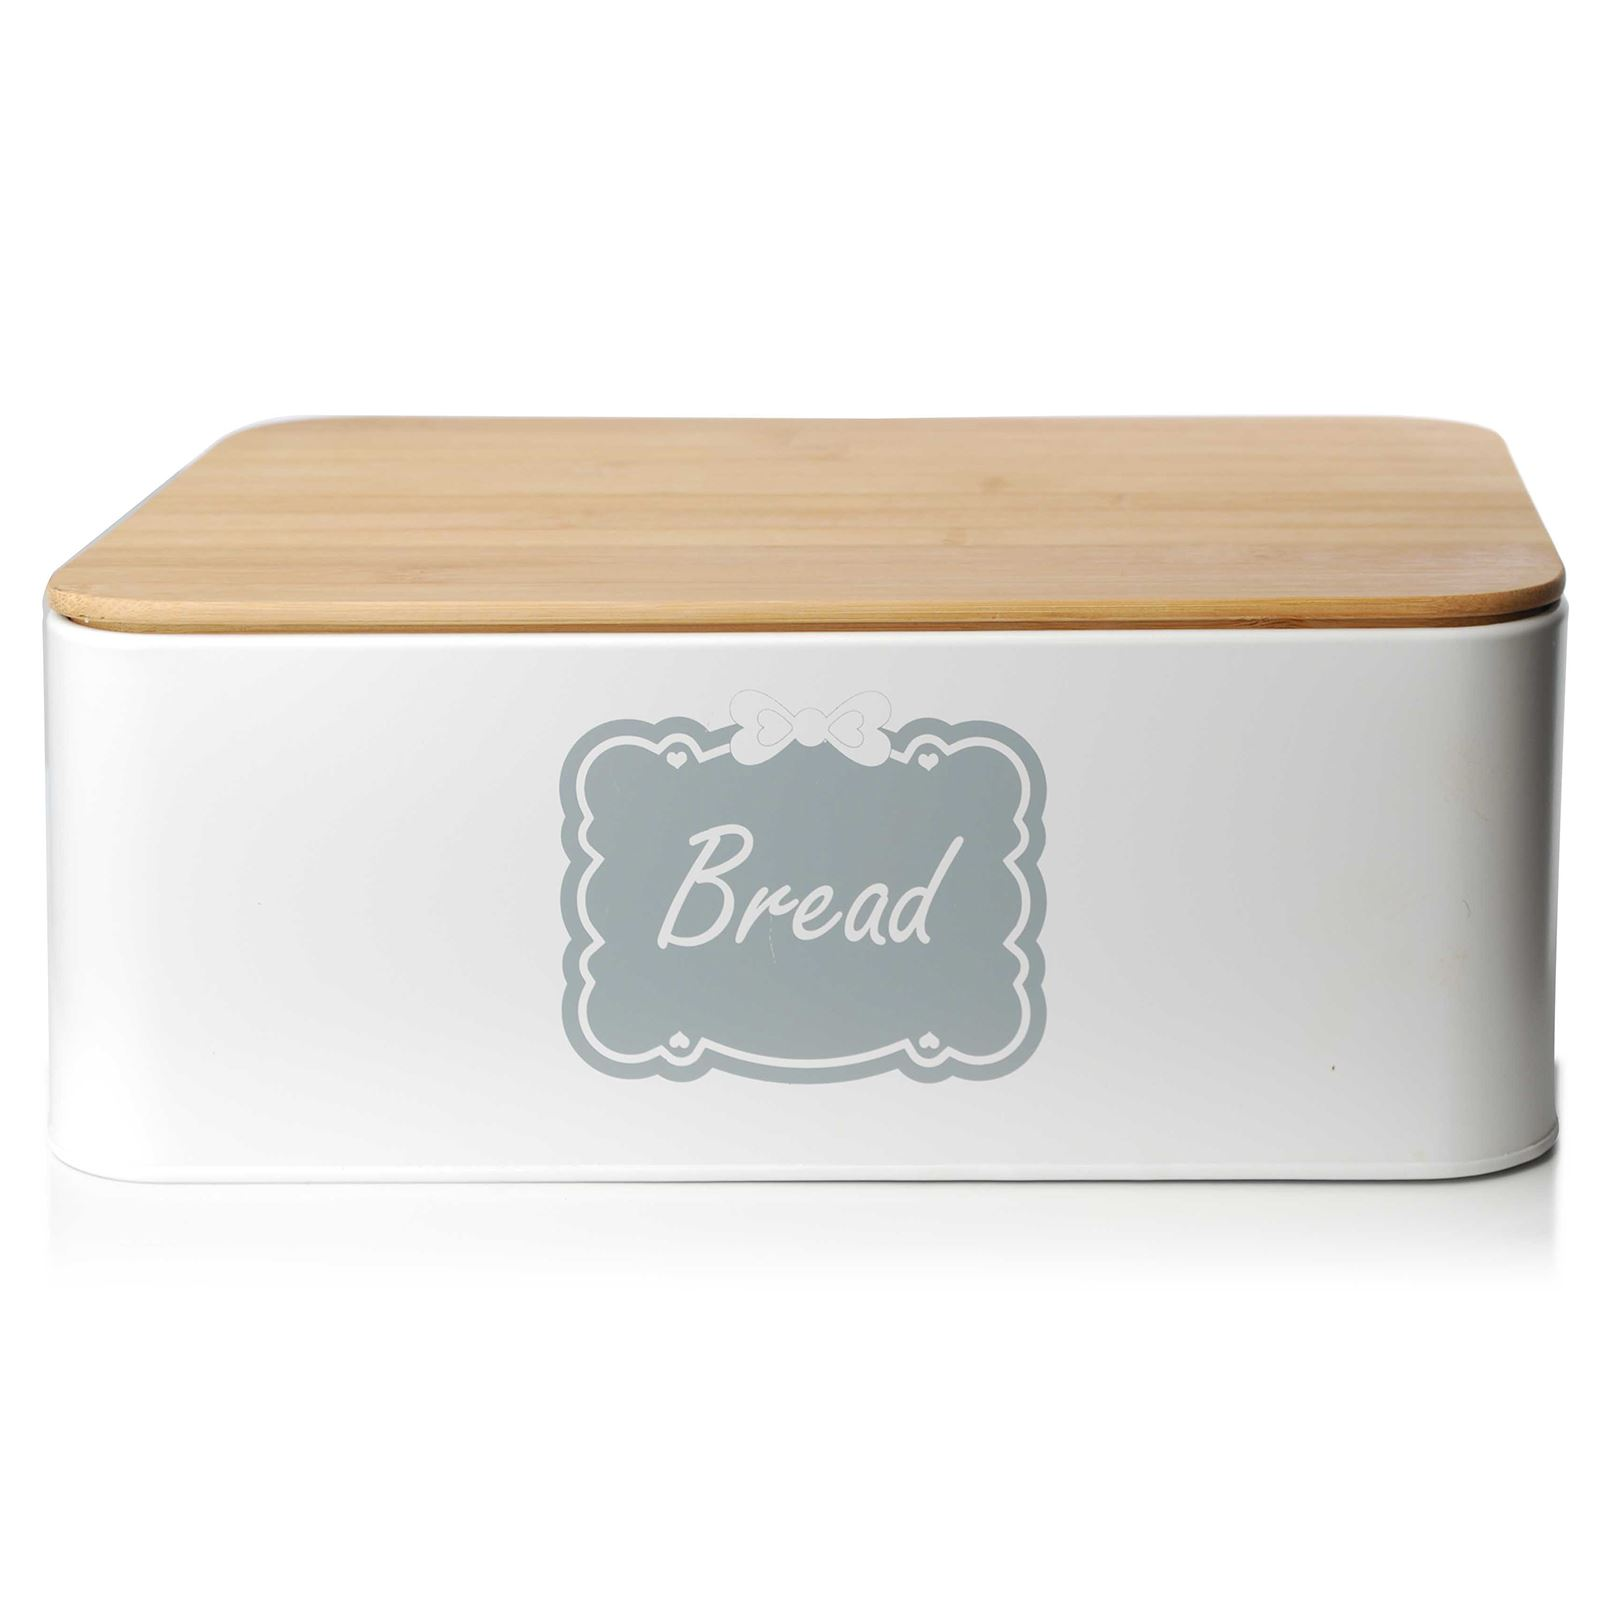 kitchen bread storage bread holder bin box vintage design home kitchen storage 2329